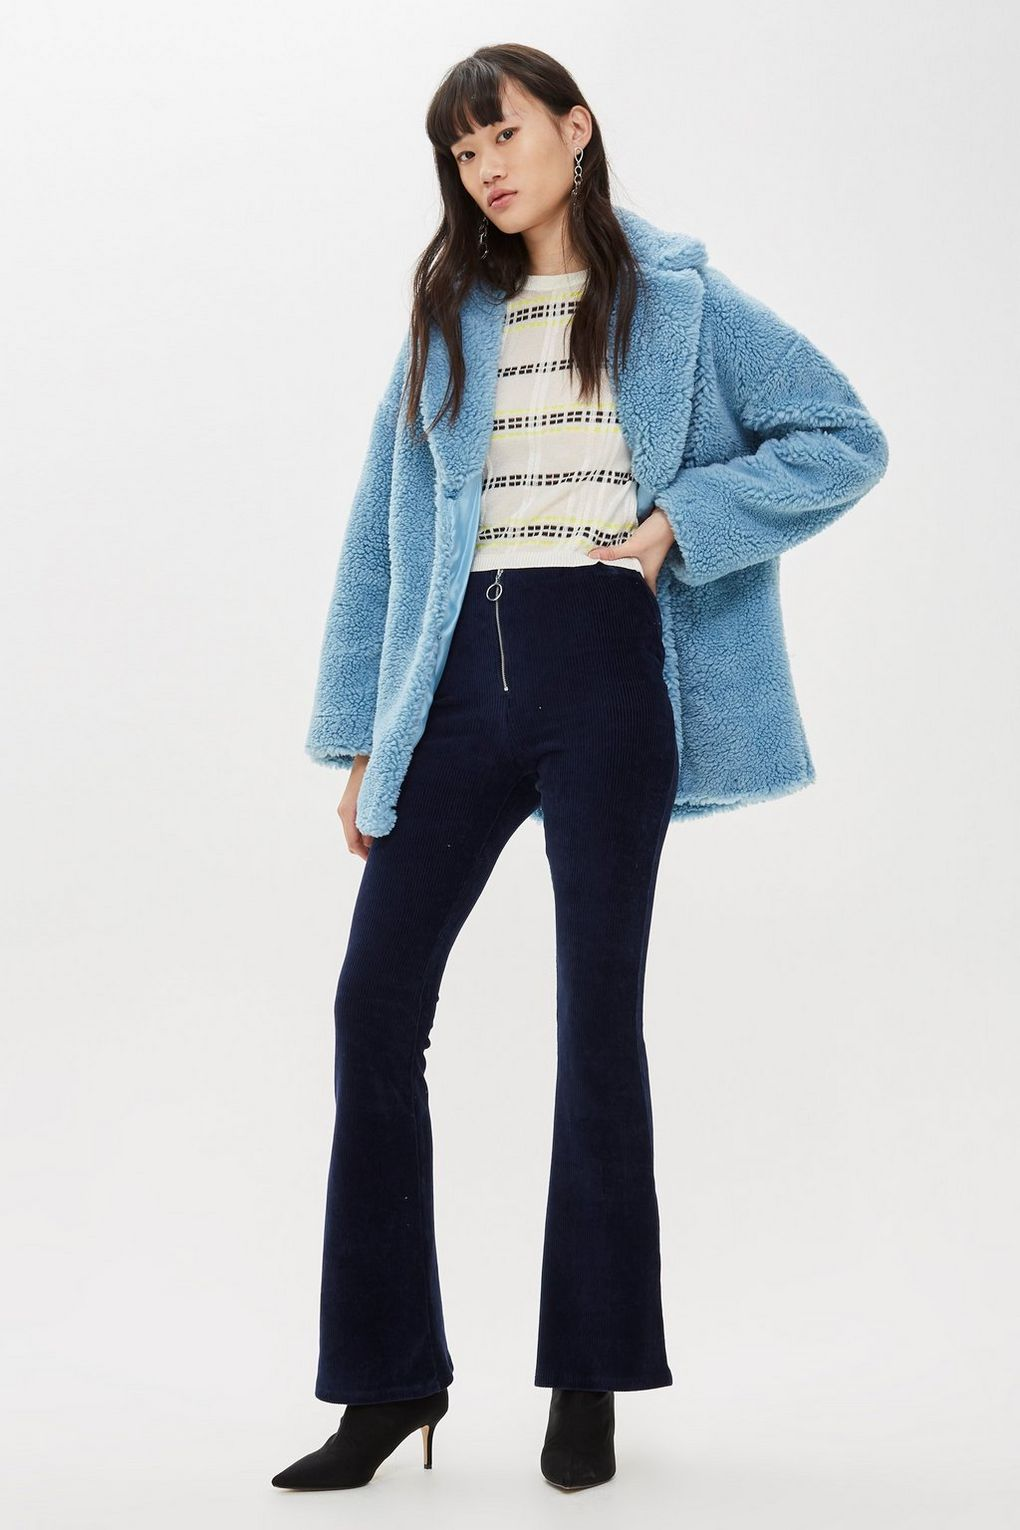 navy corduroy flared wide legged pants topshop